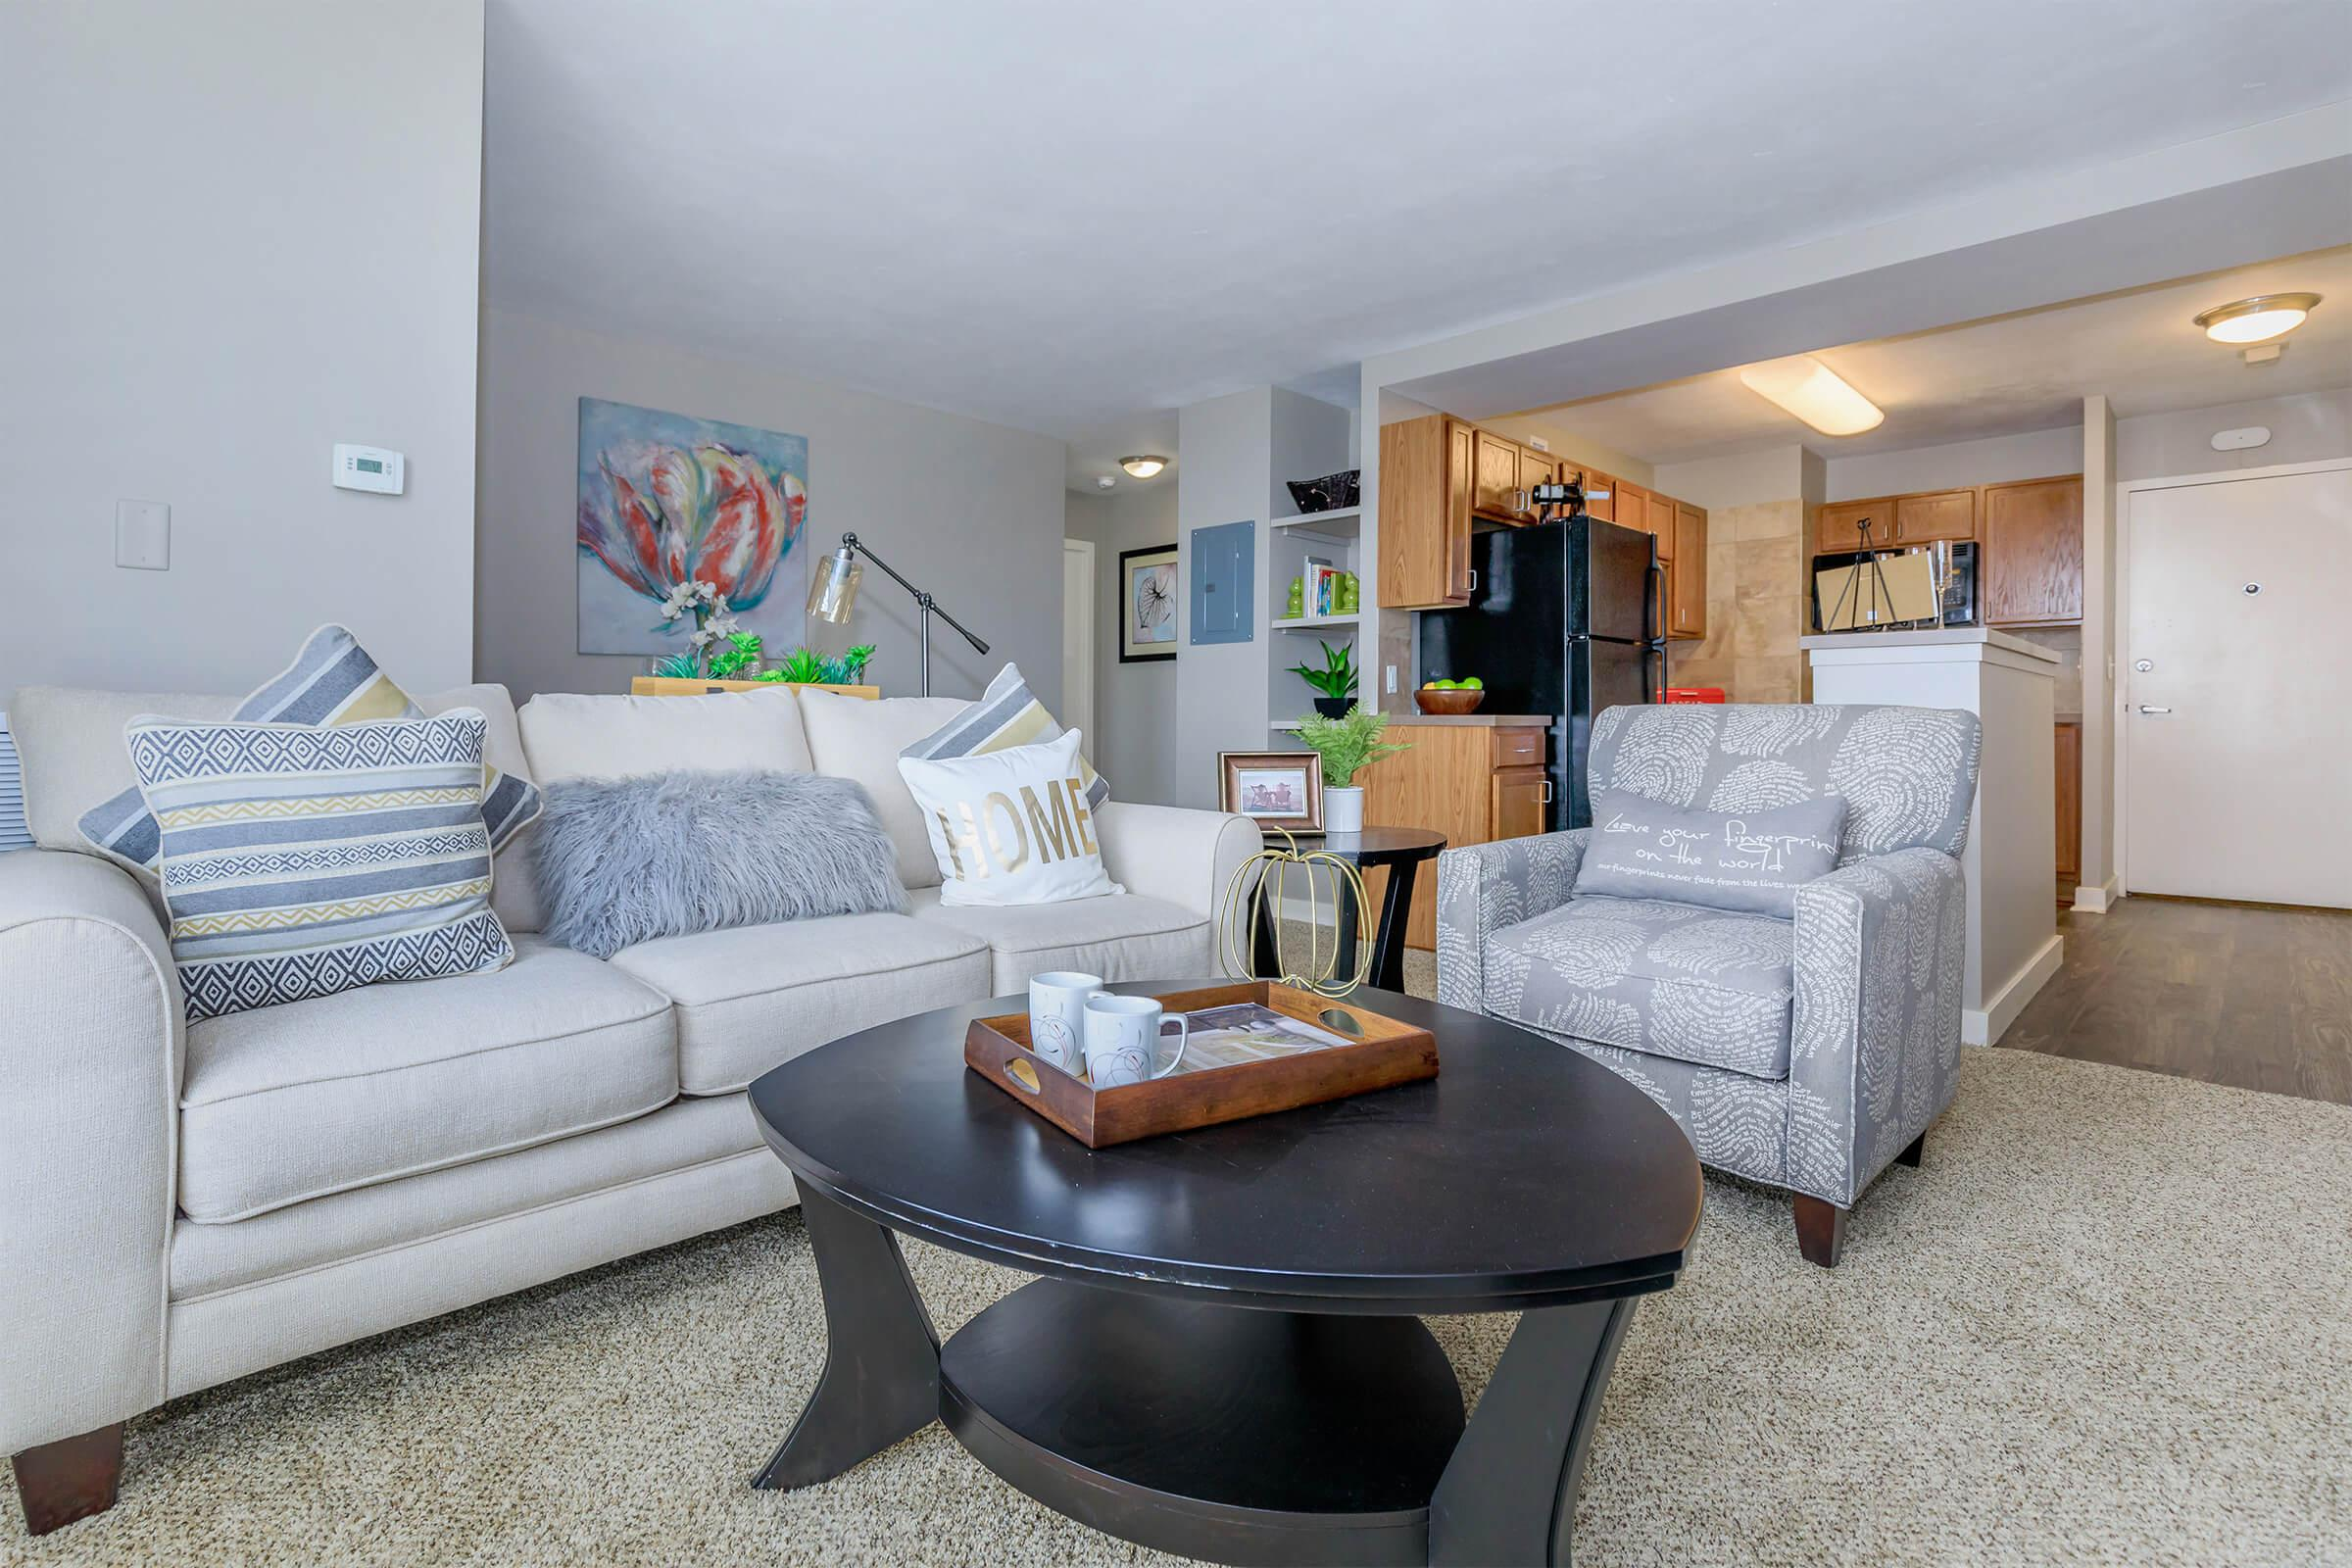 YOUR NEW LIVING ROOM AT WALNUT TOWER